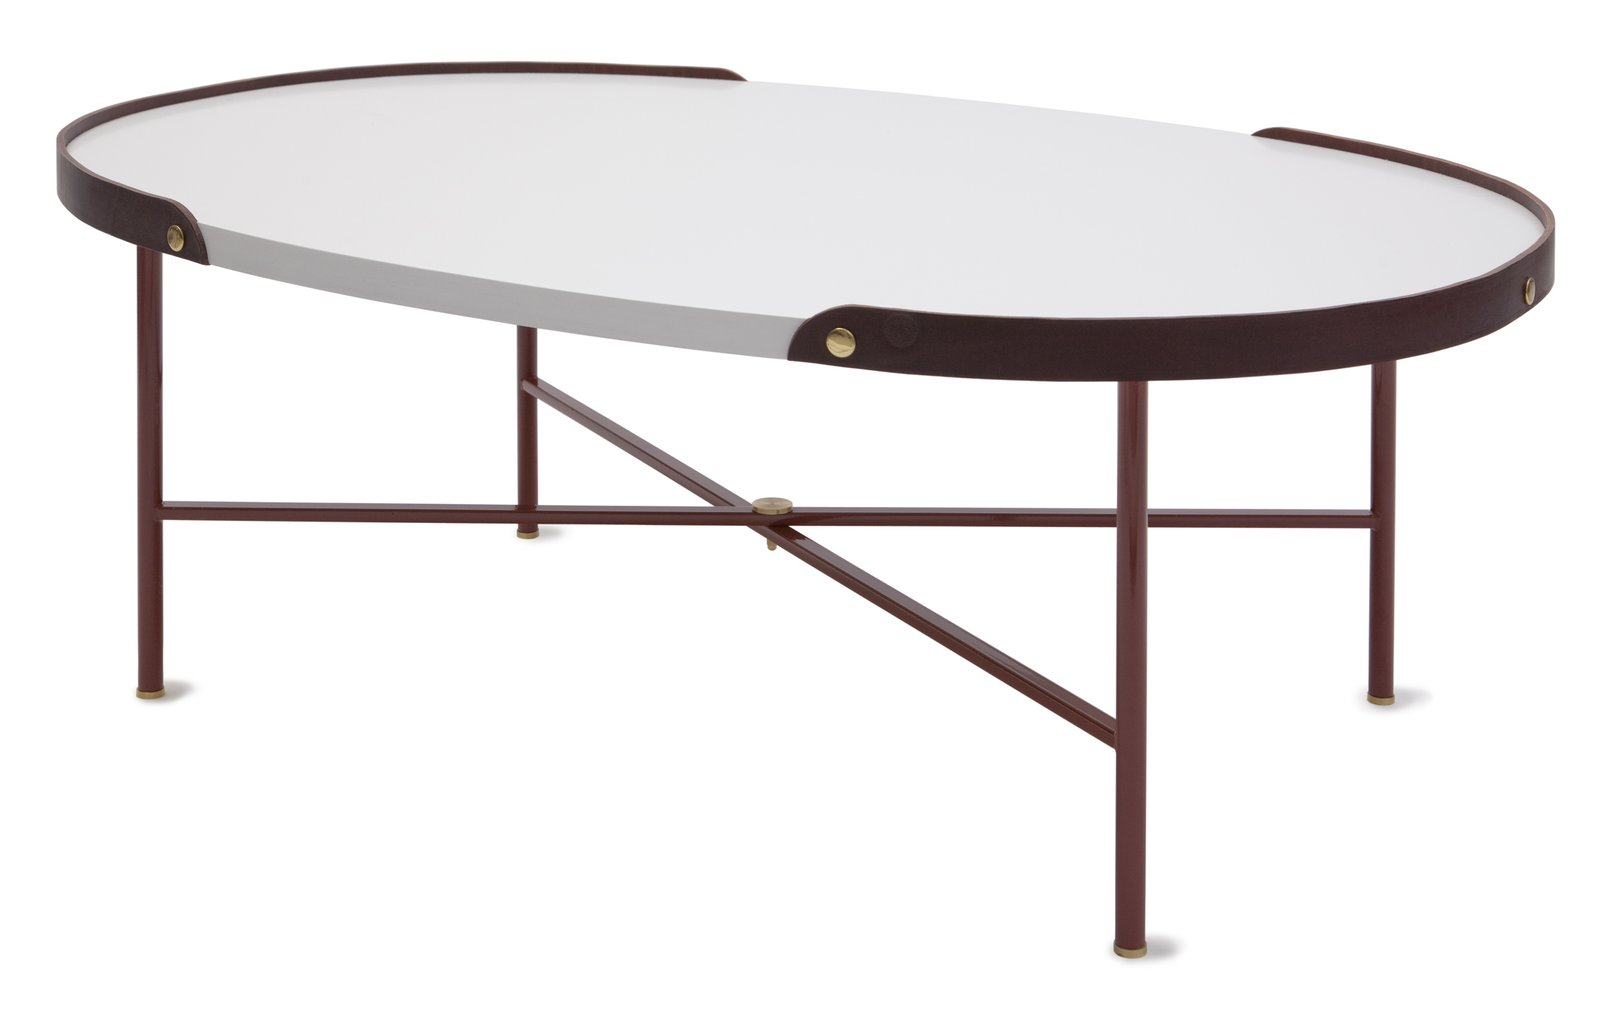 A dark brown leather edge runs around the Rink table by Eva Schildt for manufacturer Klong. The designer combines a metal frame, colored the same brown hue as the leather, with white stained ash tabletop and brass detailing.  On the Scene at Stockholm Design Week 2013 by Marianne Johnsgård